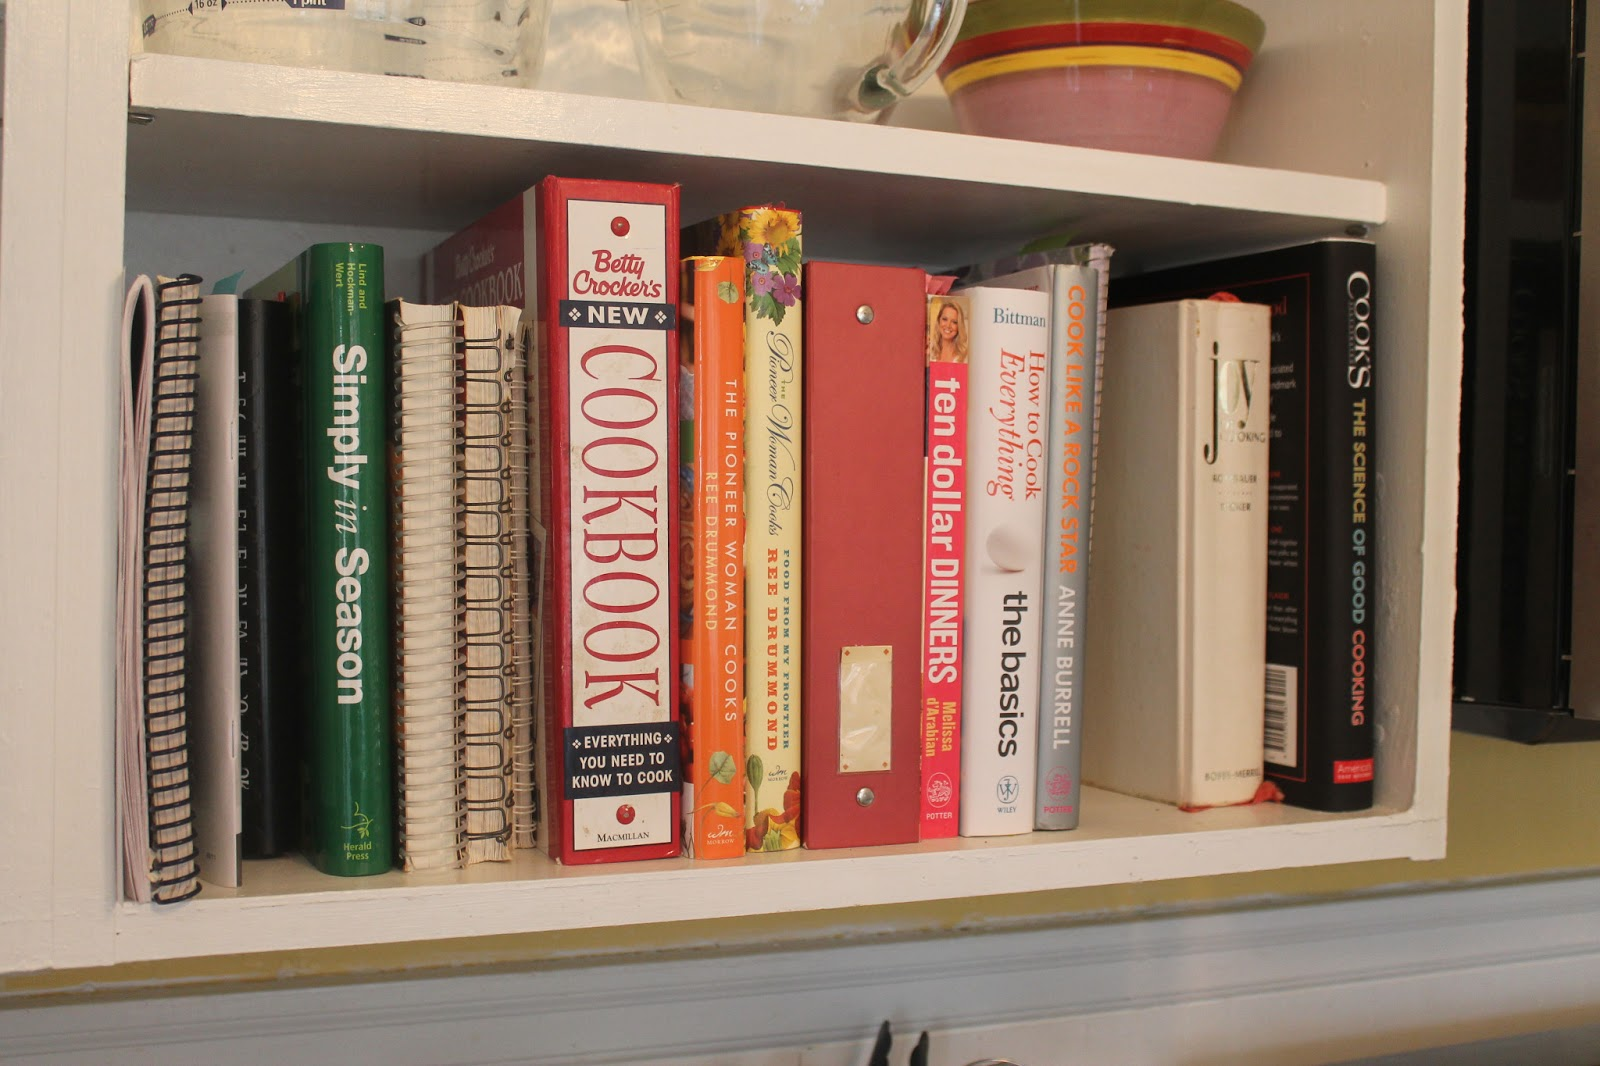 Kitchen Bookshelf White Backsplash Tile She Who Makes Cookbooks On My Betty Crocker S New Cookbook Basic Cooking Information With Many Tried And True Recipes Pioneer Woman Cooks From An Accidental Country Girl